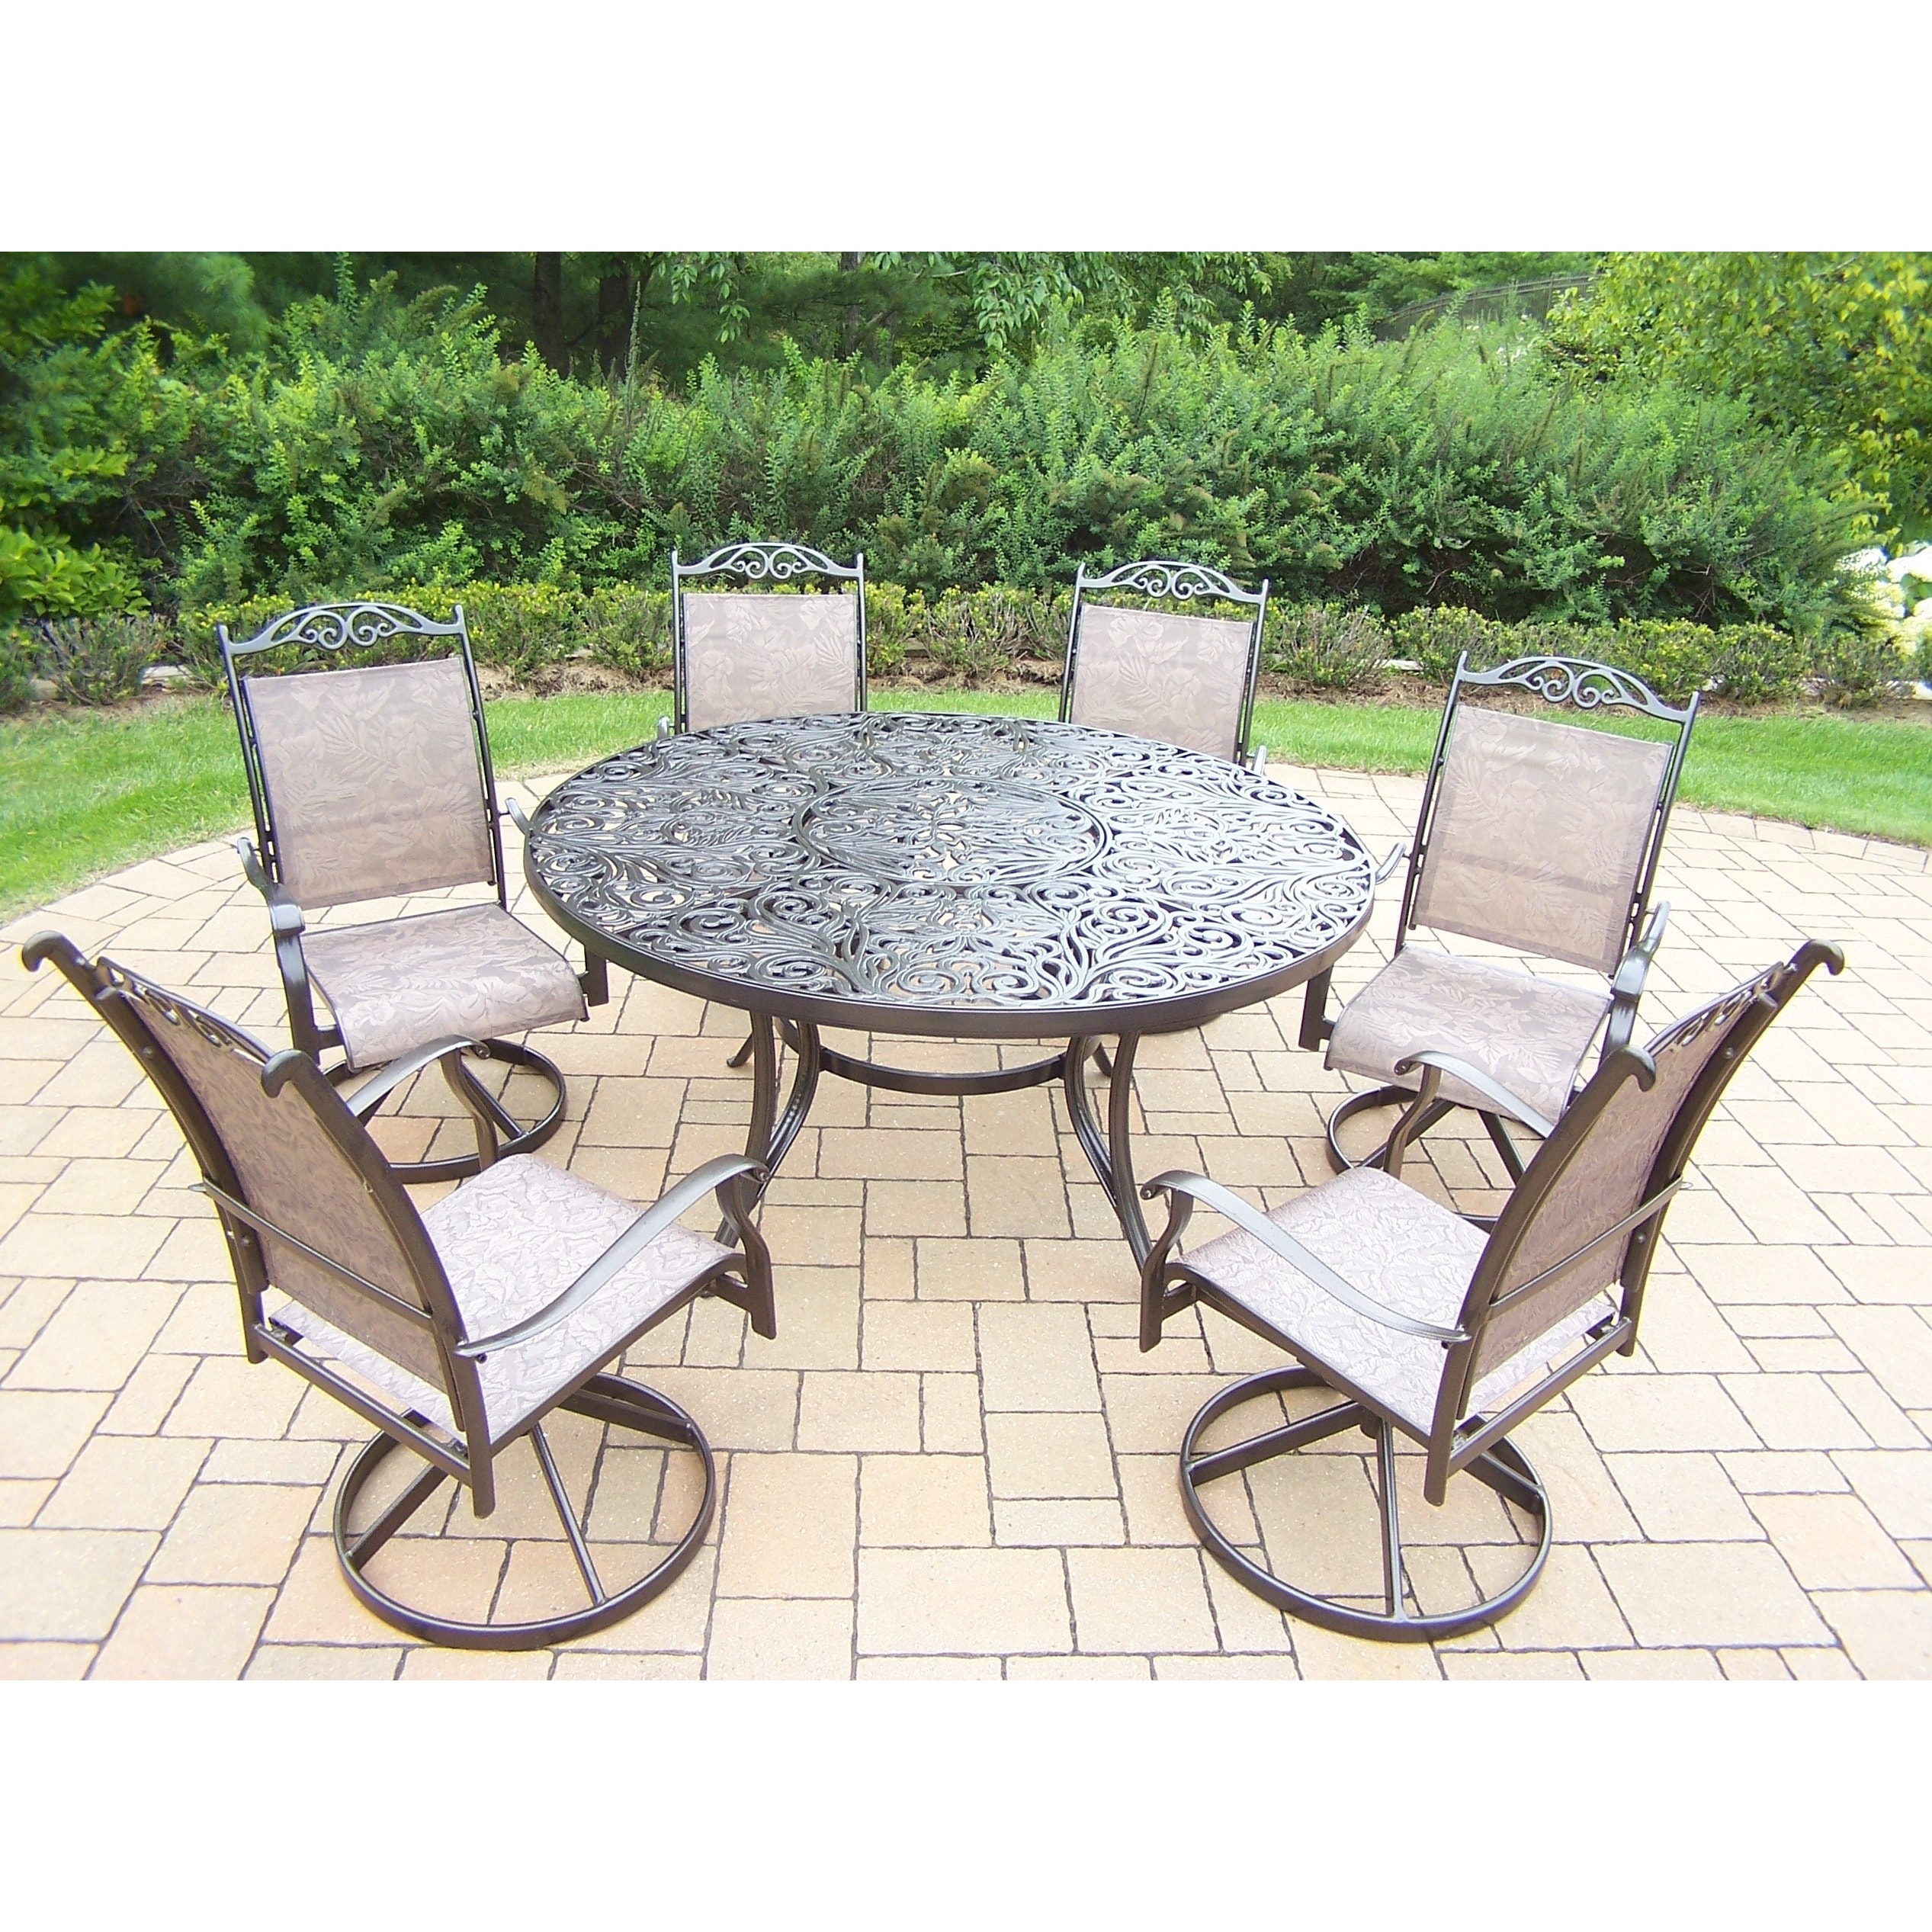 Aluminum 7 Piece Outdoor Patio Dining Set With 6 Swivel Rockers On Sale Overstock 12775834